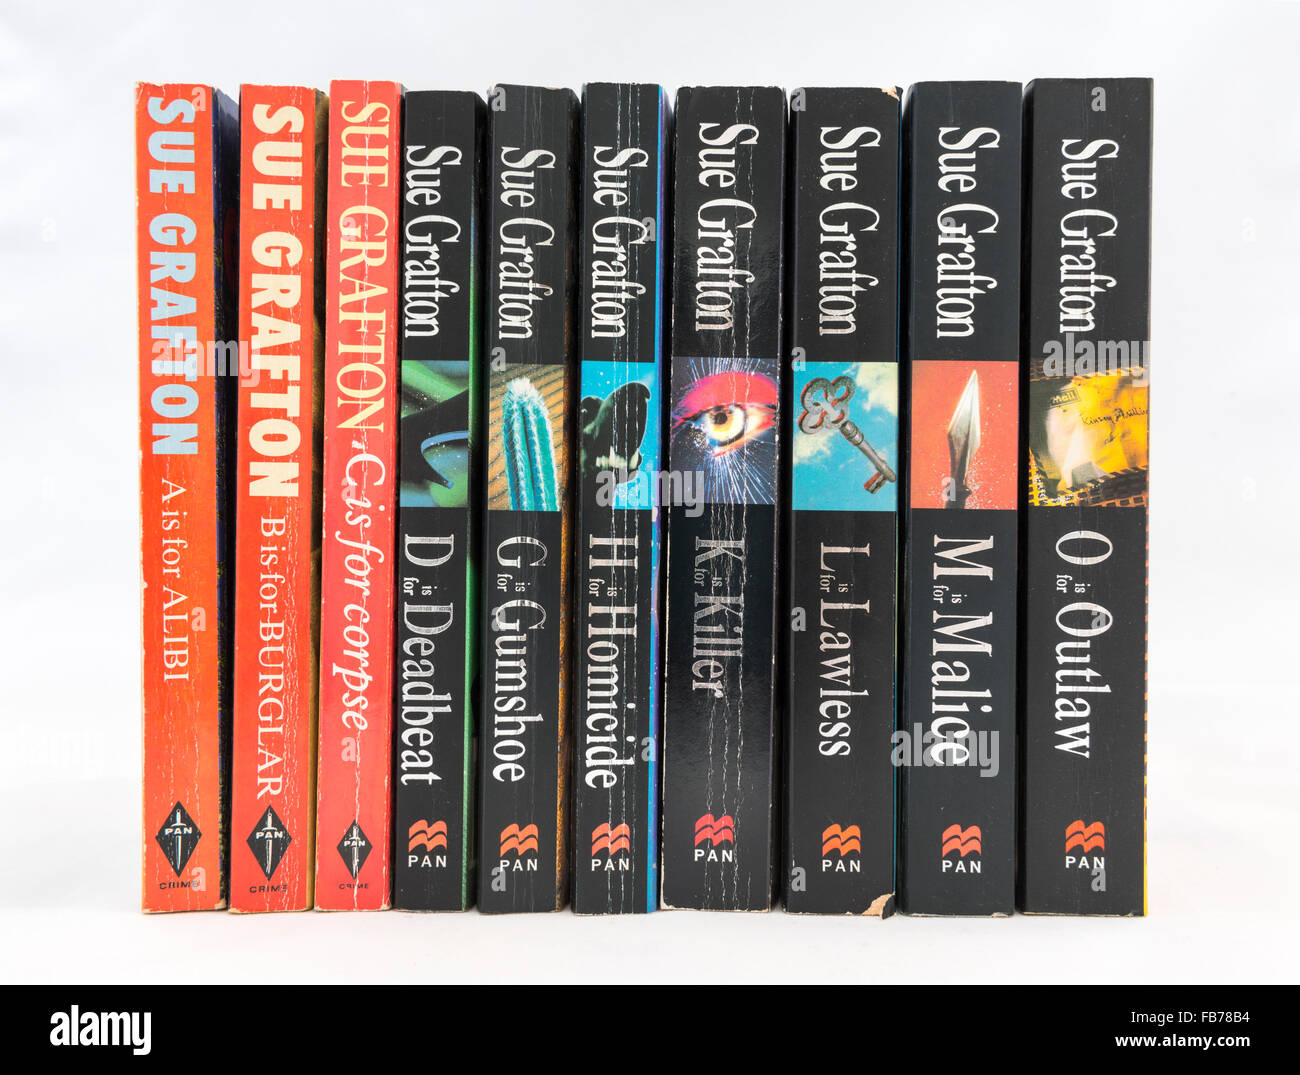 Detective novels by Sue Grafton featuring private investigator Kinsey Millhone. - Stock Image